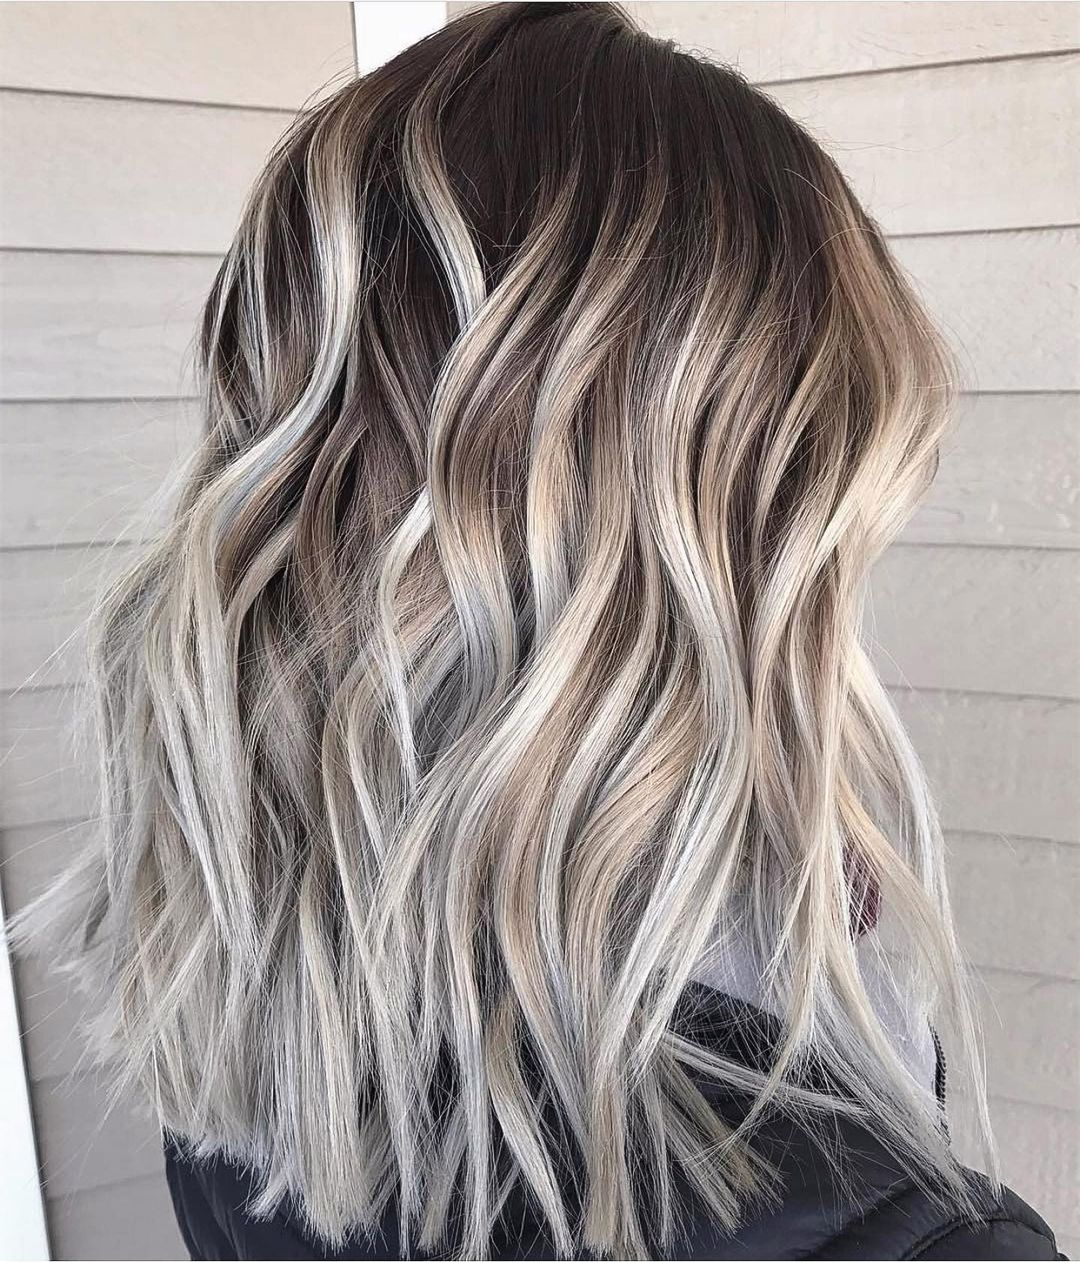 Silver and Blonde Balayage Highlights